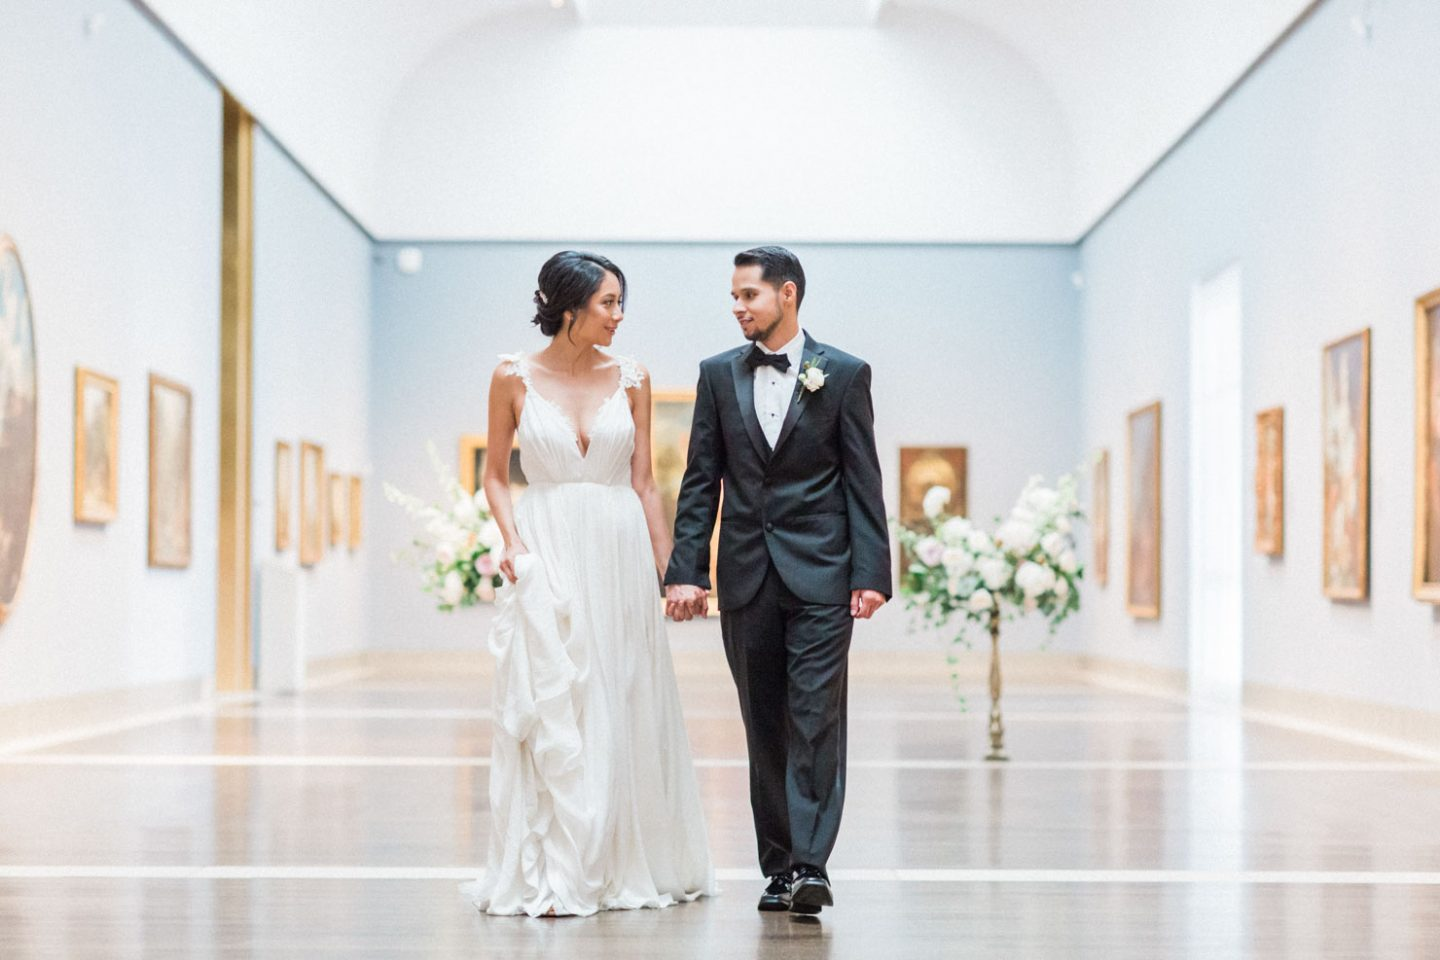 Our 10 Year Wedding Anniversary + 10 Random Facts About Us